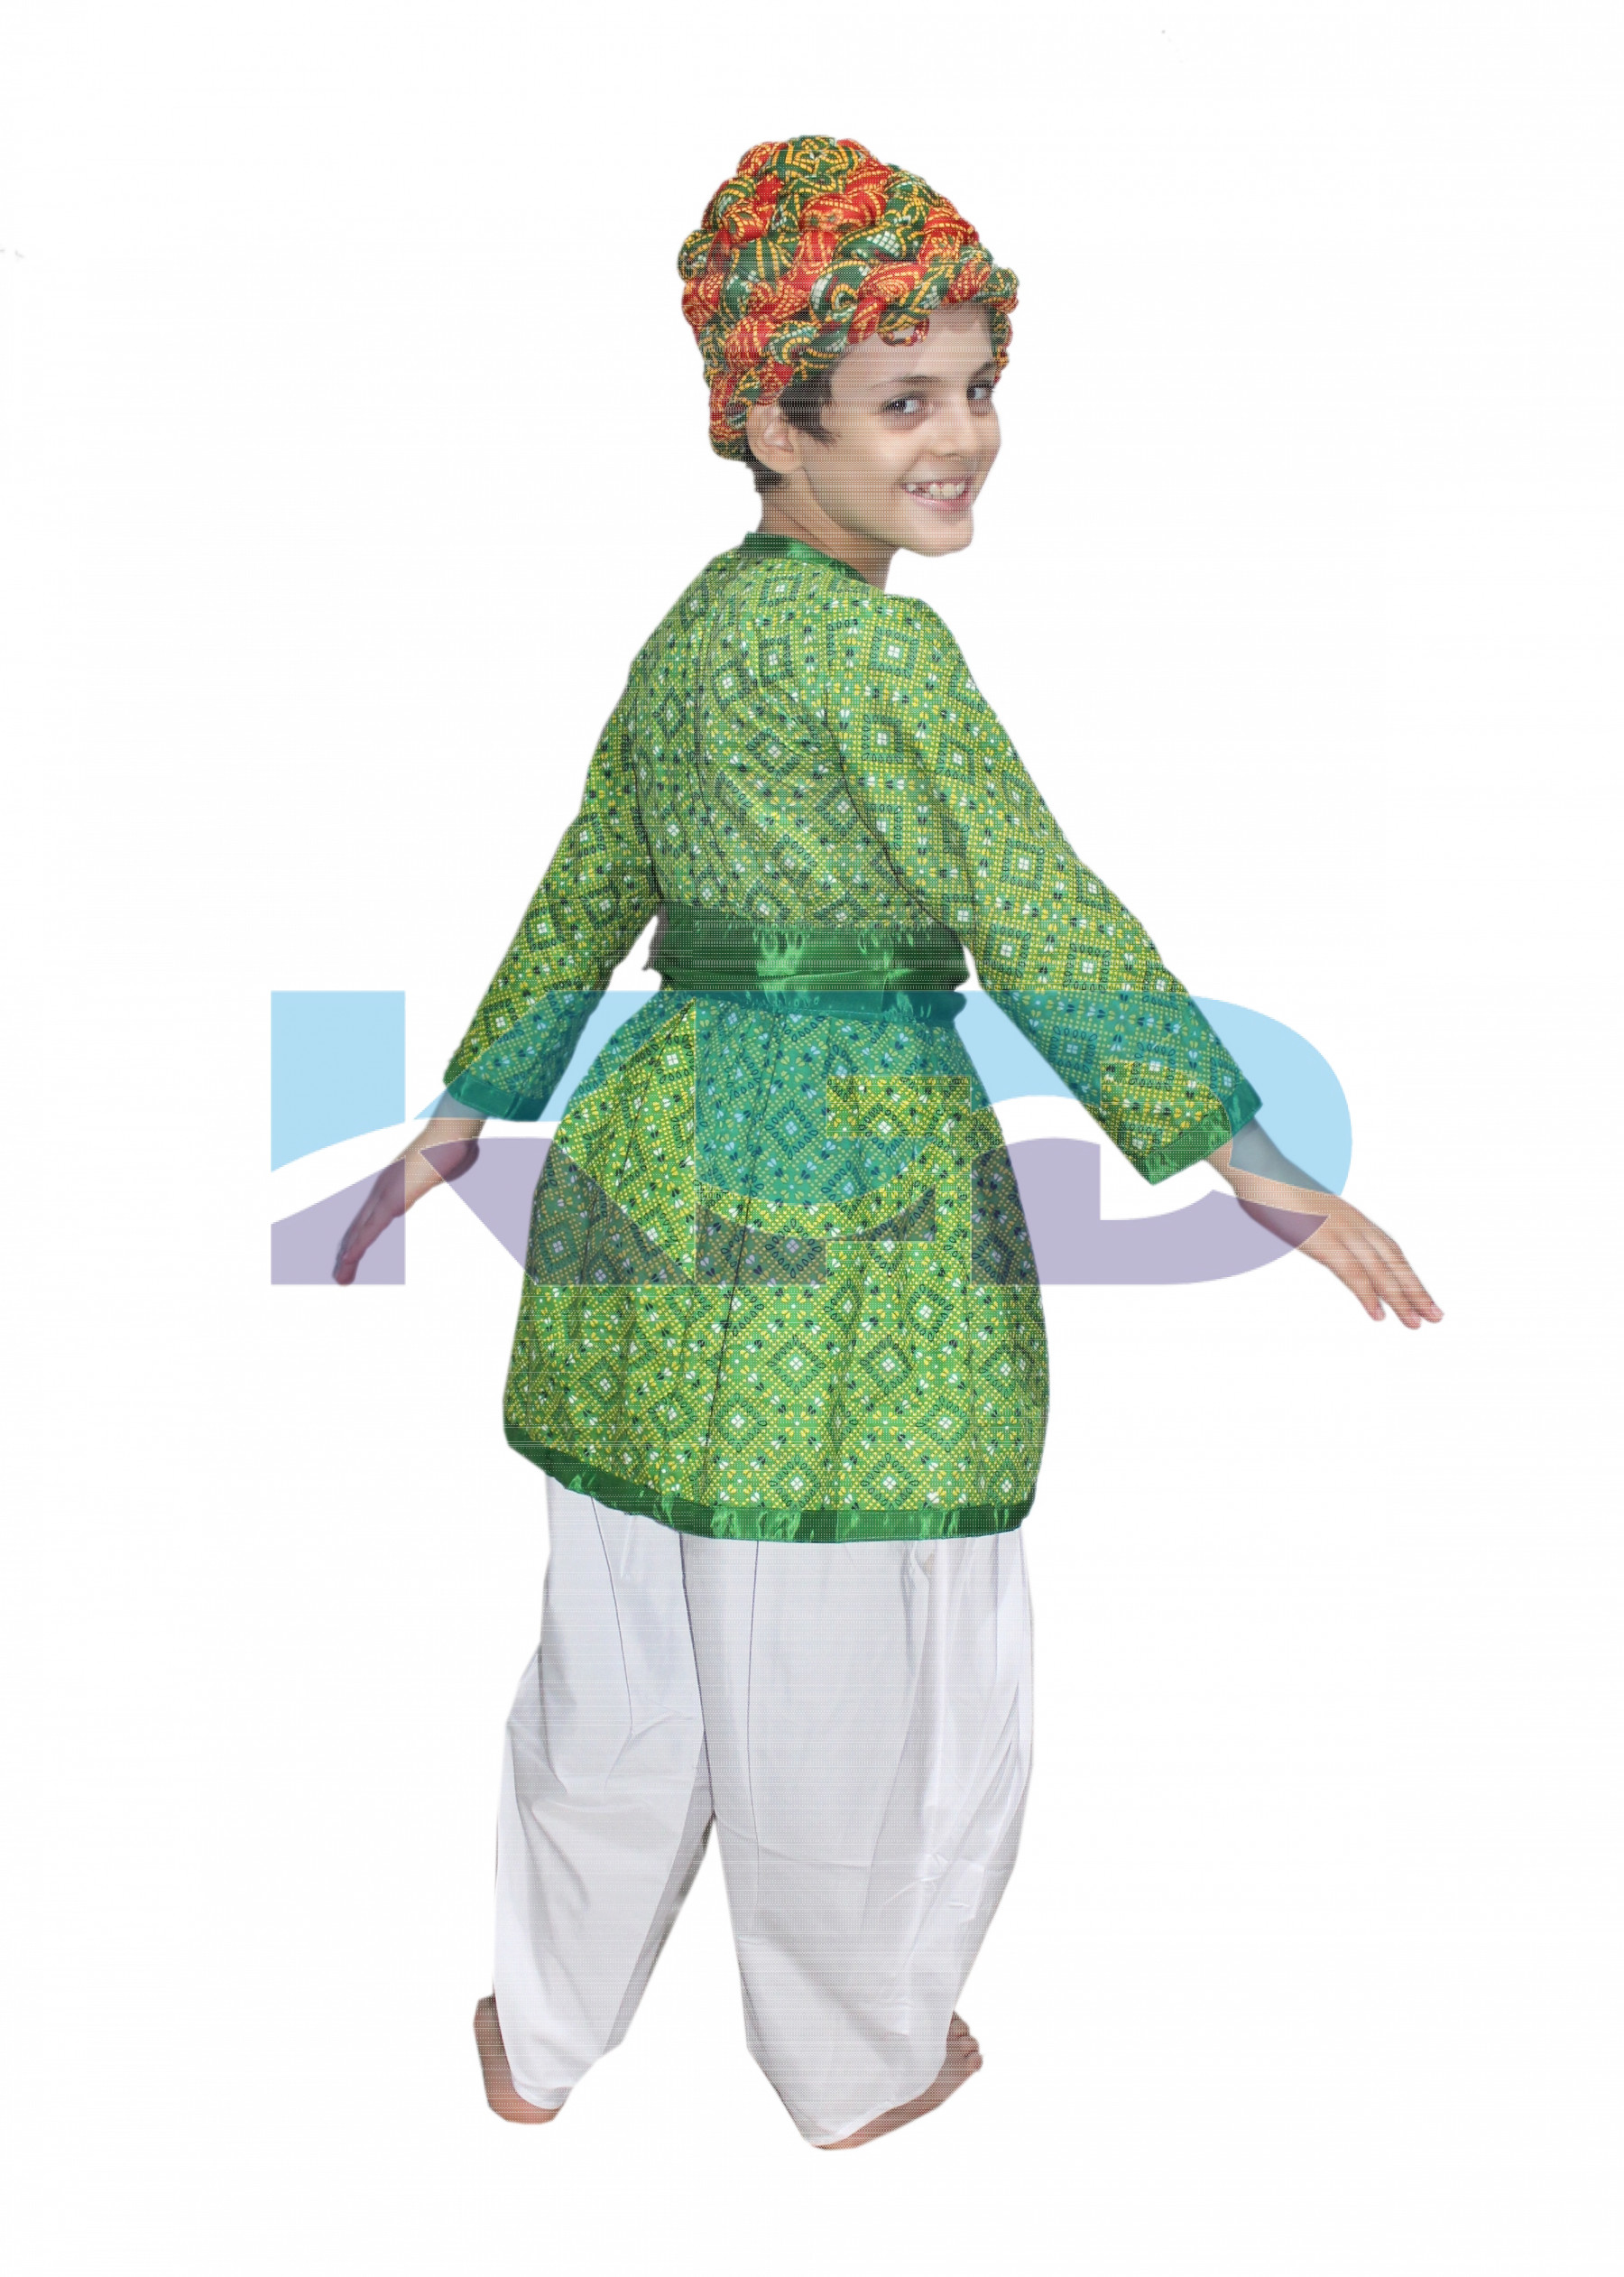 ba358ec58 Rajasthani Boy Green Color fancy dress for kids,Indian State ...